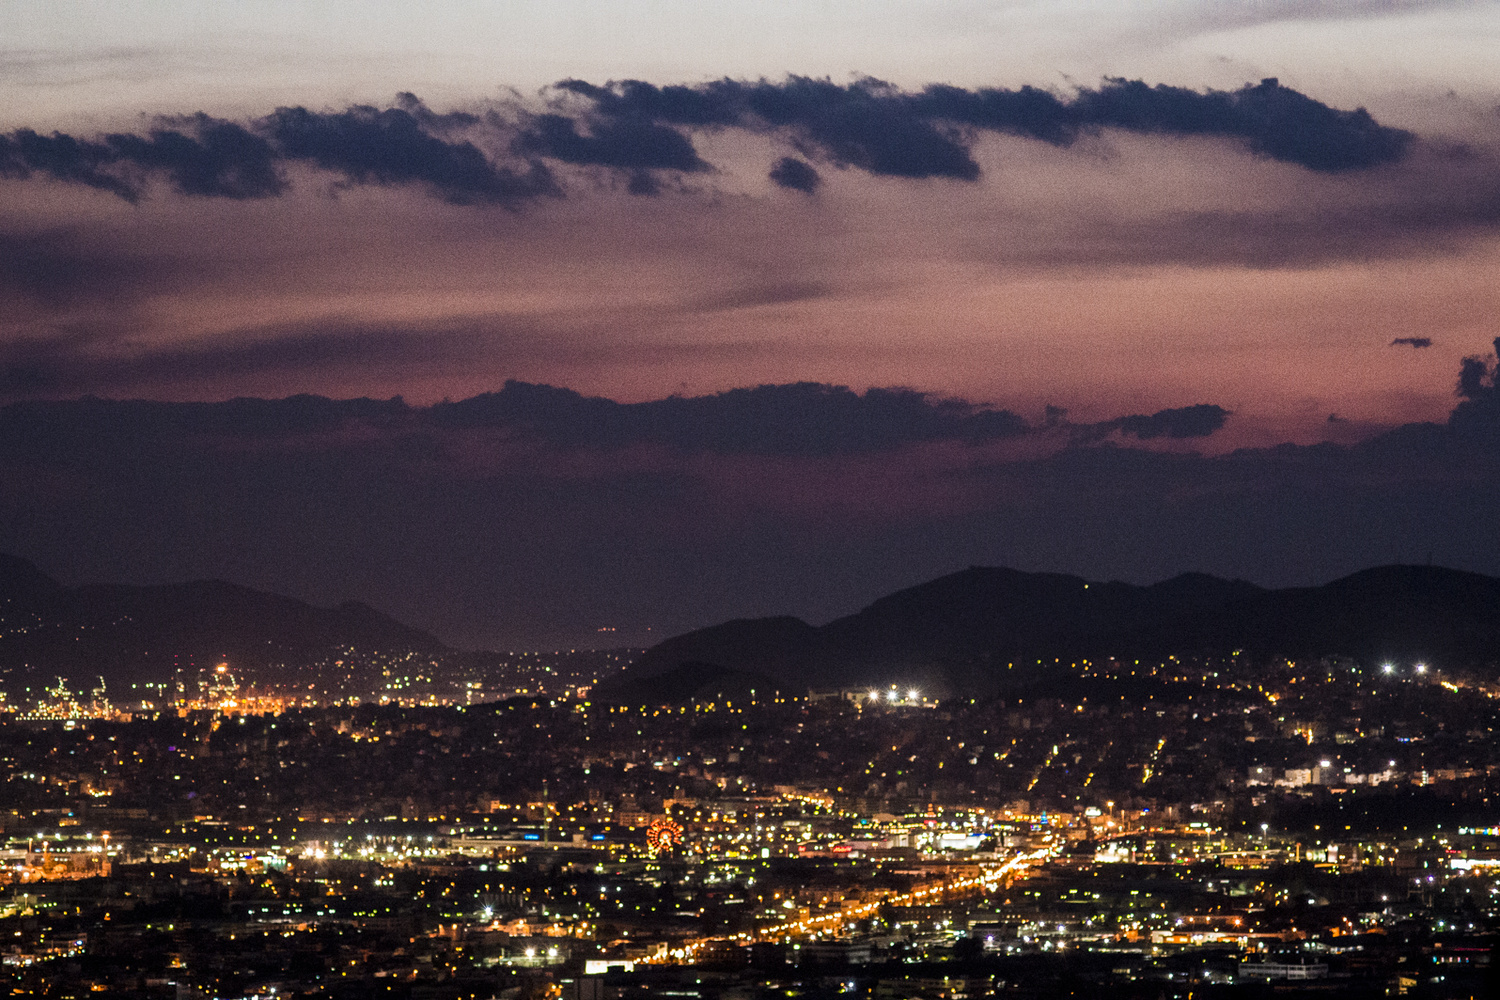 City Lights - View from Lycabettus Hill - Greece by George Stergiopoulos